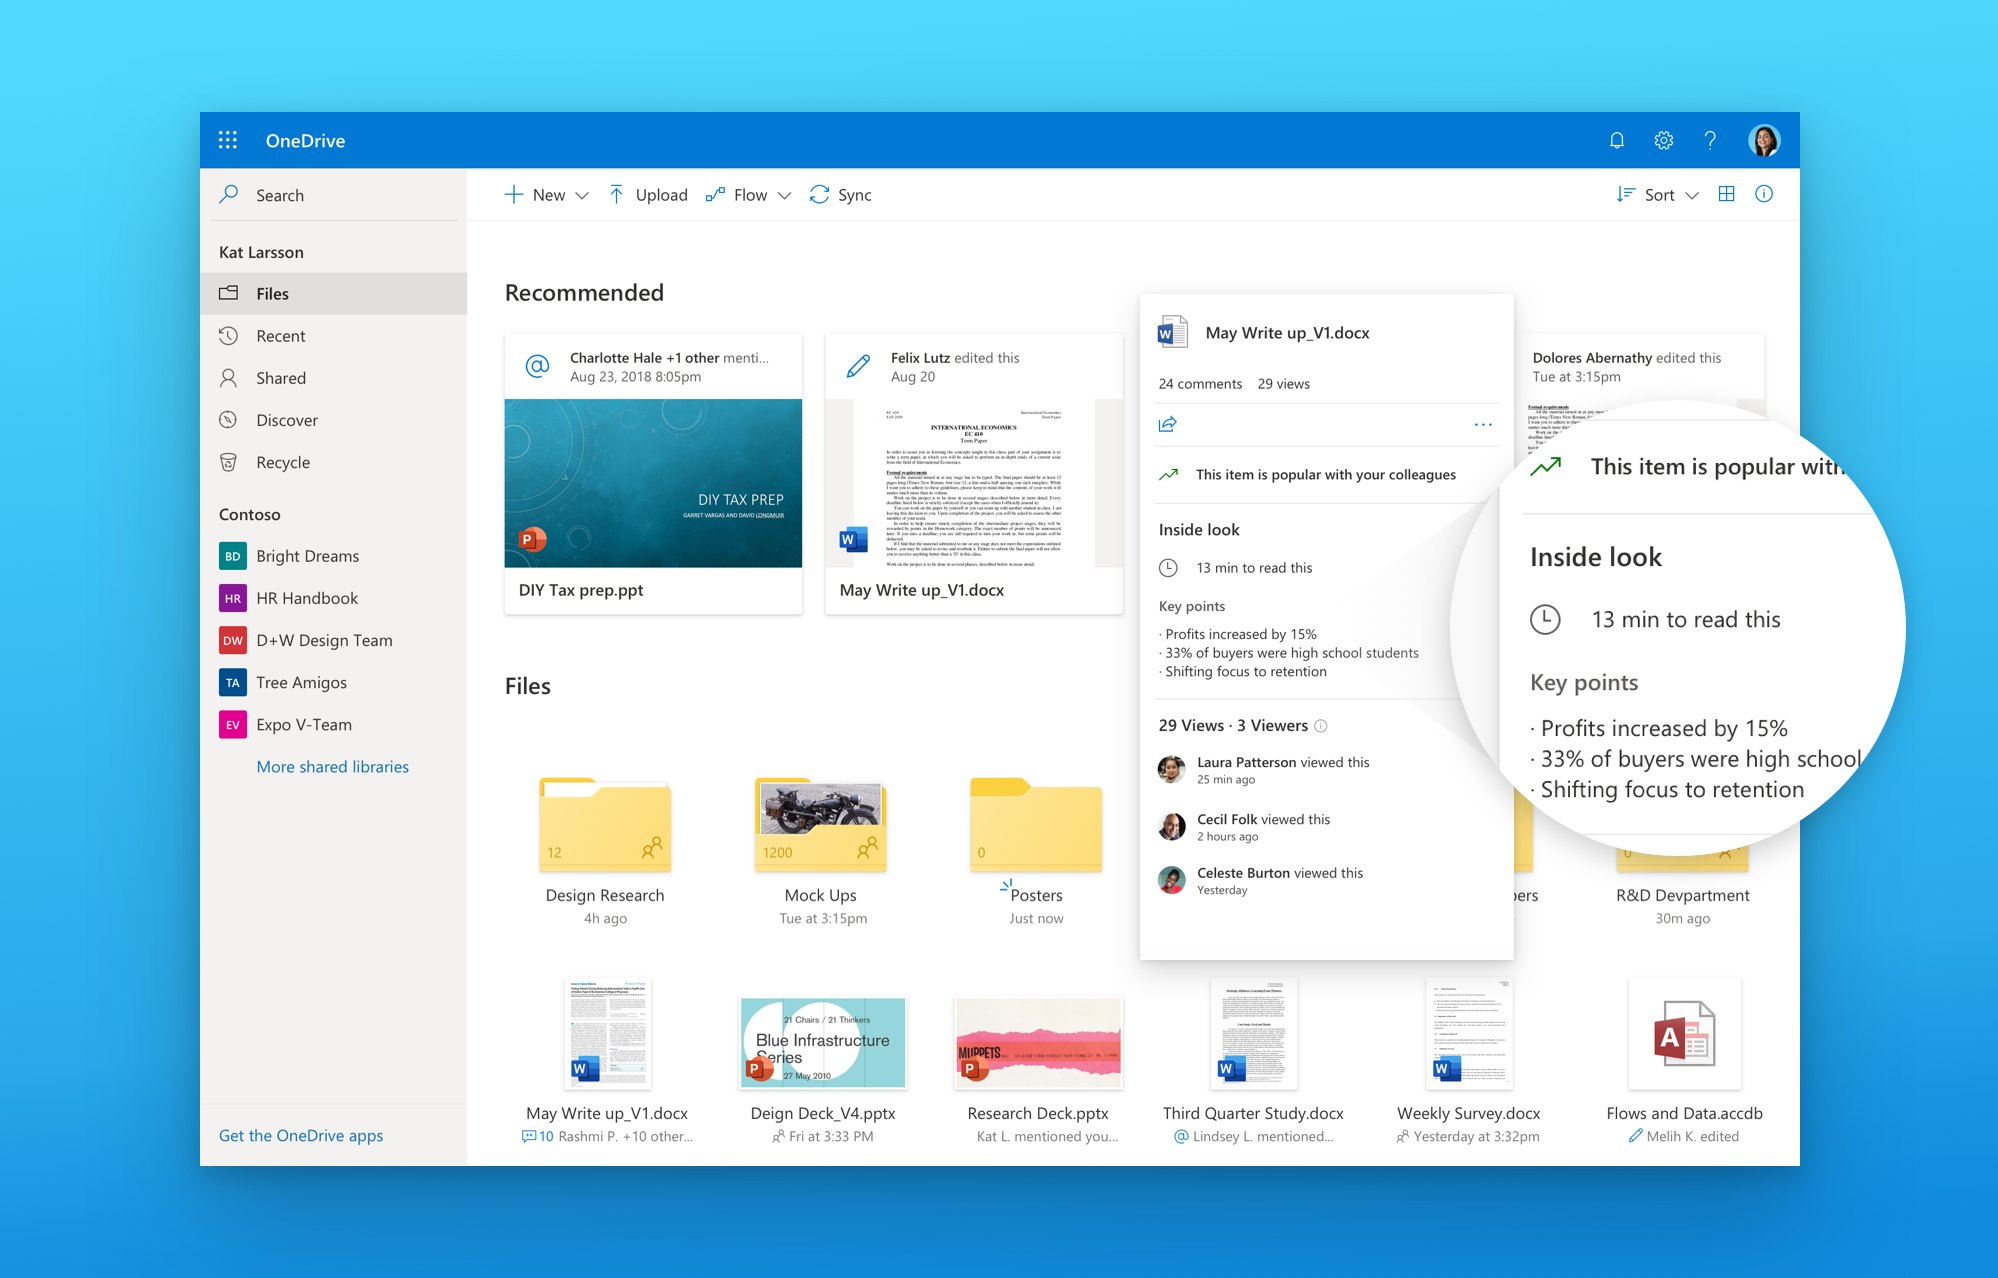 Designing a Fluent and Intelligent OneDrive - Microsoft Tech